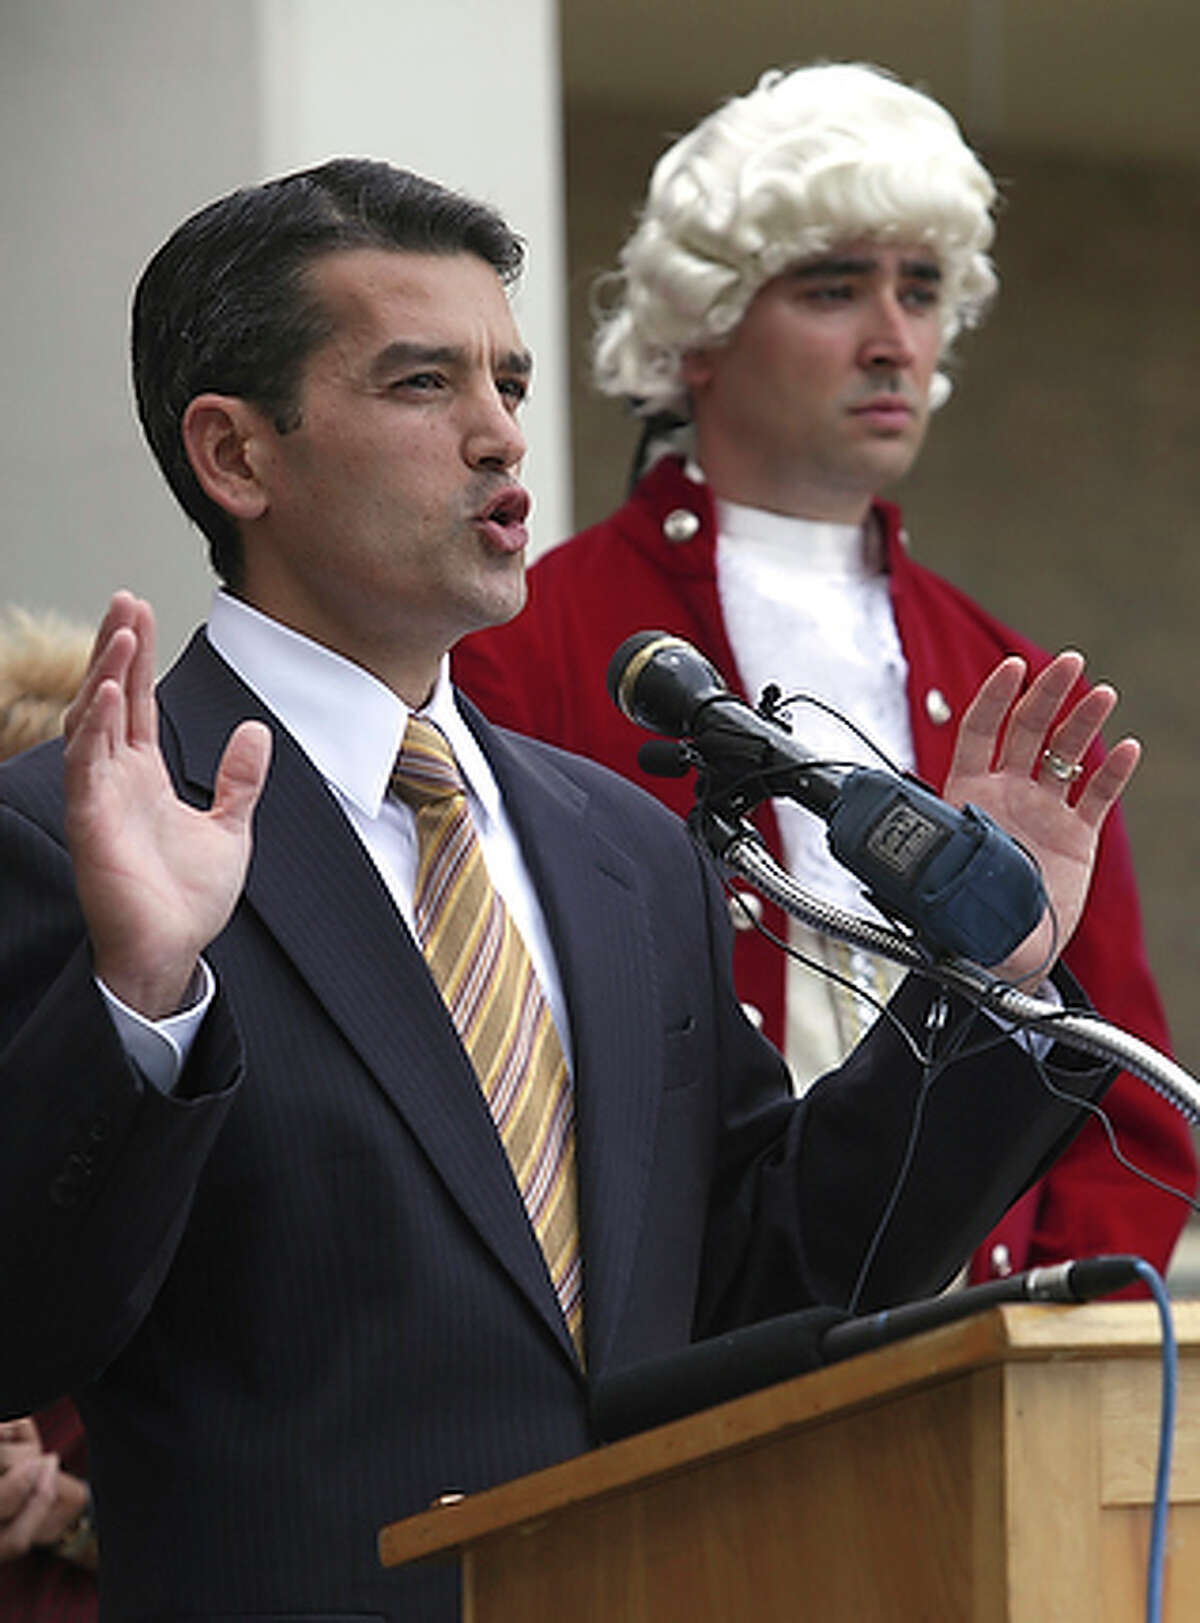 State Rep.Mike Villarreal gives a news conference to protest the proposed changes in the new social studies textbook guidelines. One of the new standards for social studies approved by the Texas State Board of Education that will appear in next fall's textbooks removes Thomas Jefferson, portrayed by an man at right, from a list of figures who inspired revolutions.